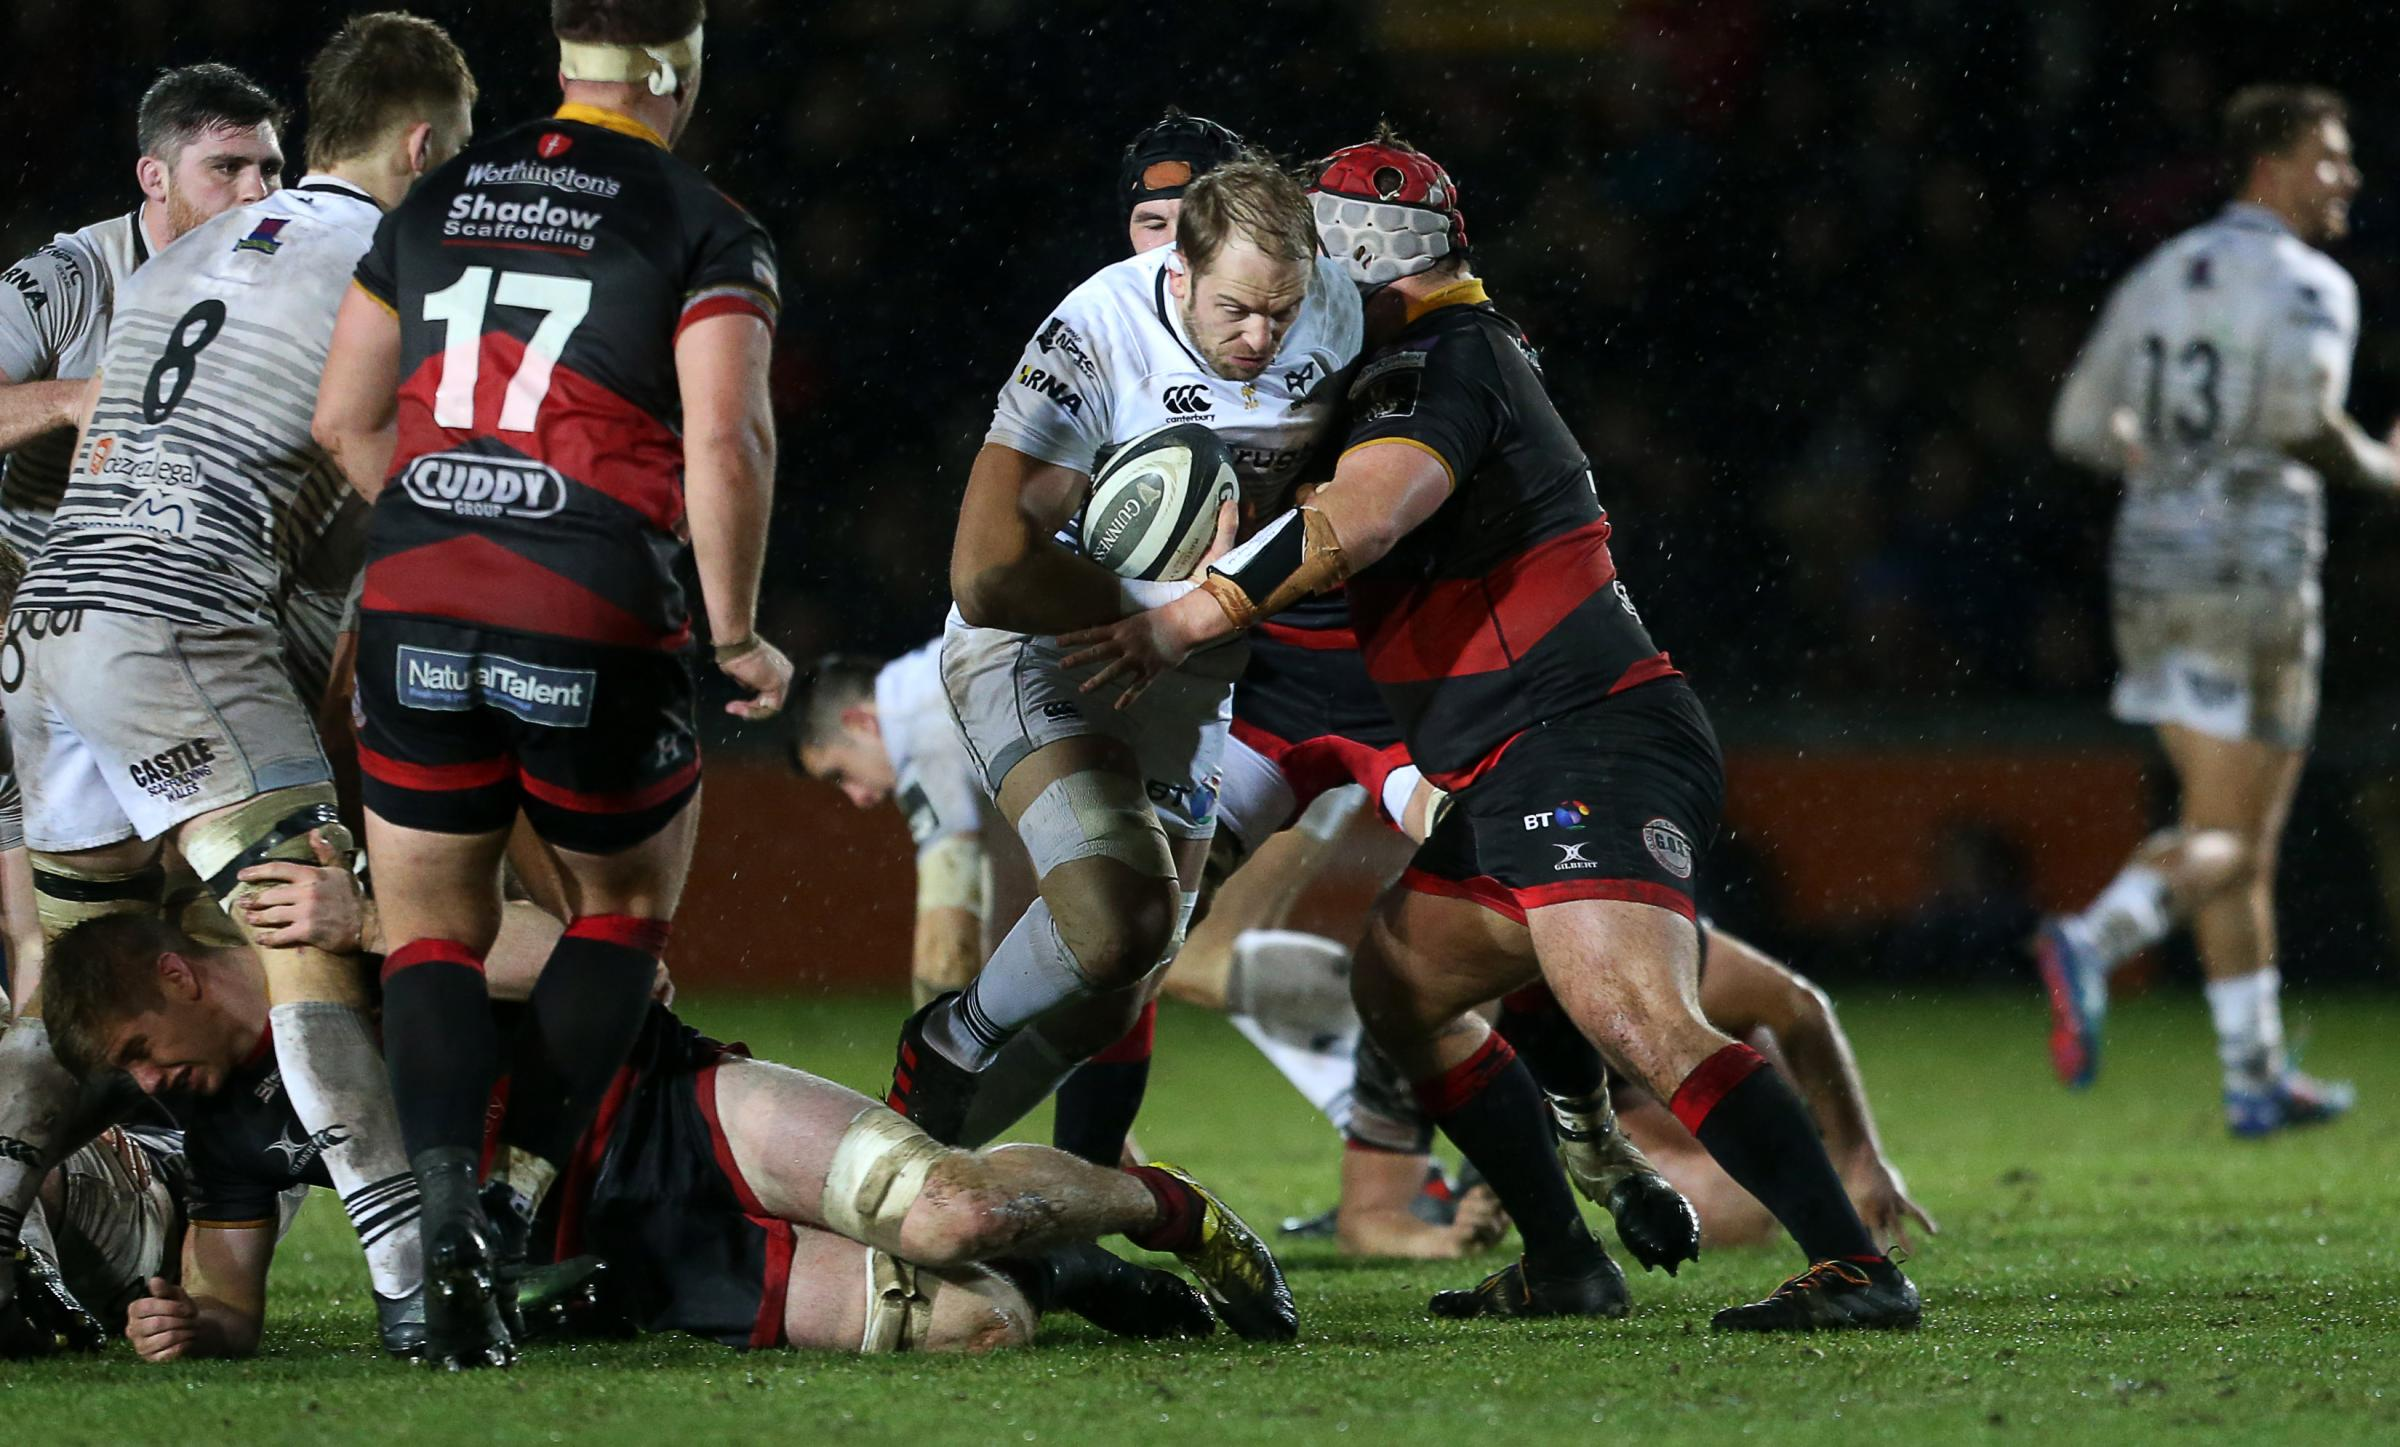 ROOM FOR IMPROVEMENT: Nicky Thomas, pictured tackling Alun Wyn Jones, knows he must be more mobile